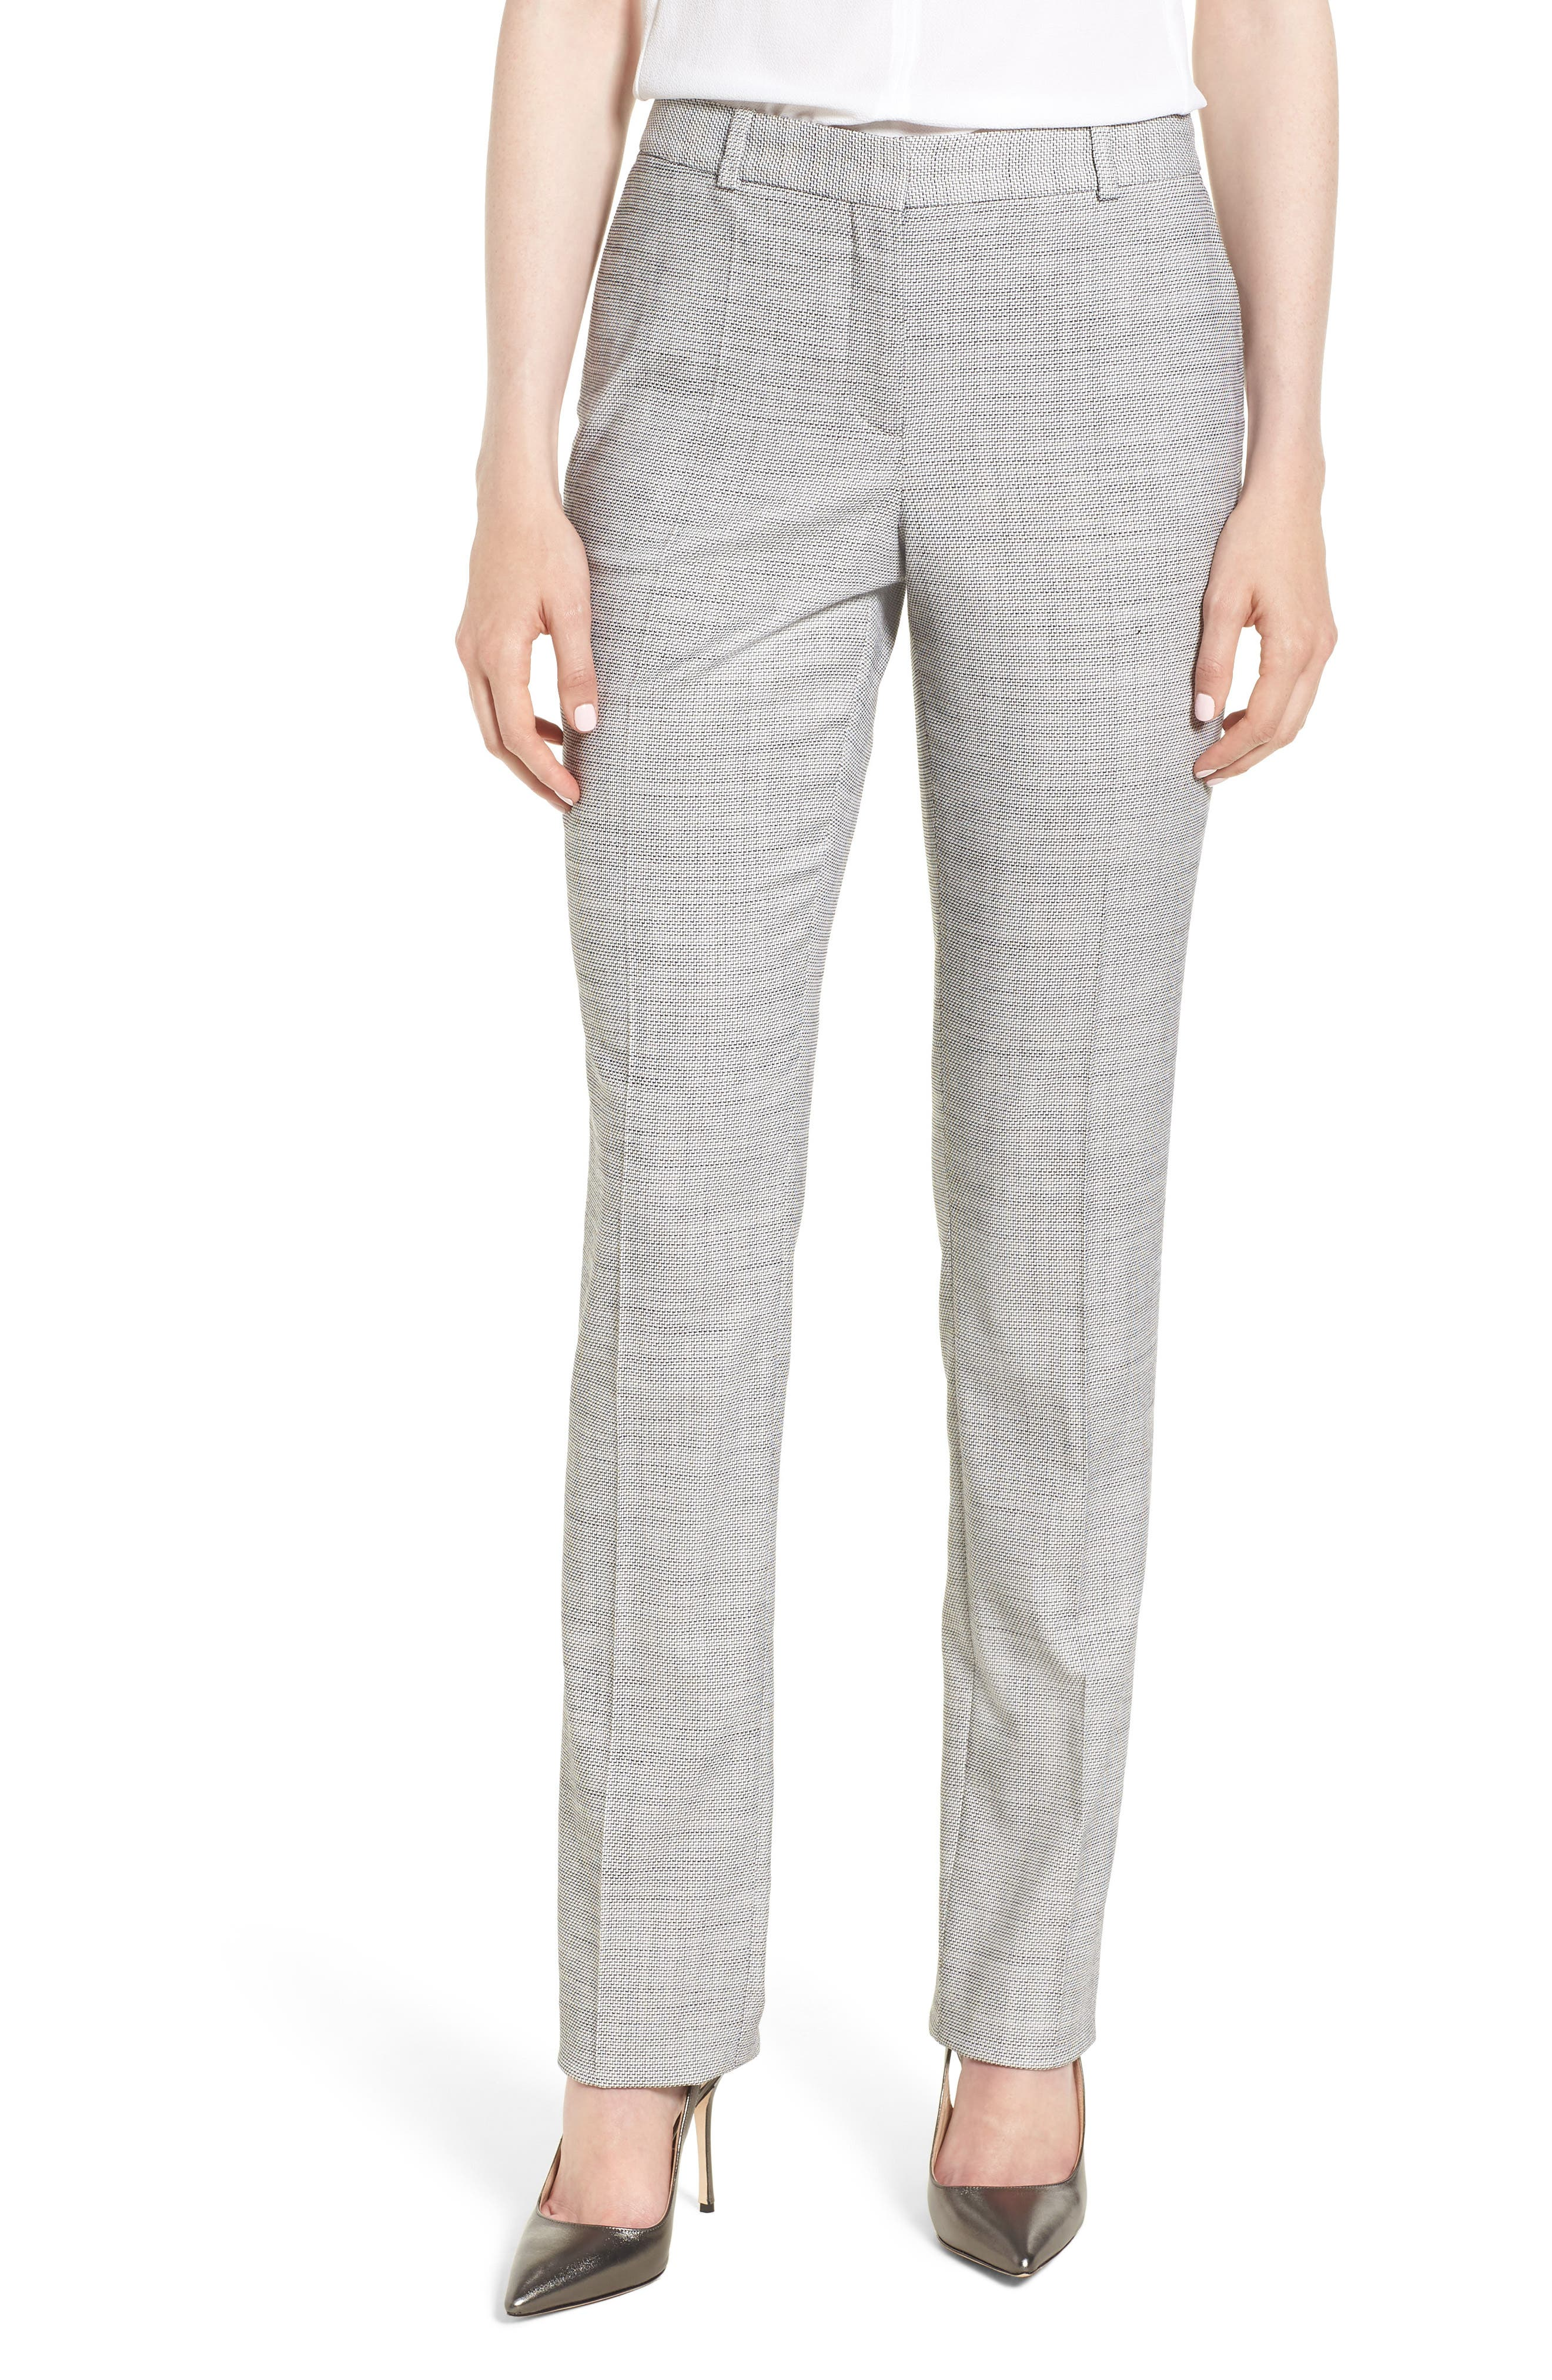 Titana Straight Leg Suit Pants,                         Main,                         color, 165